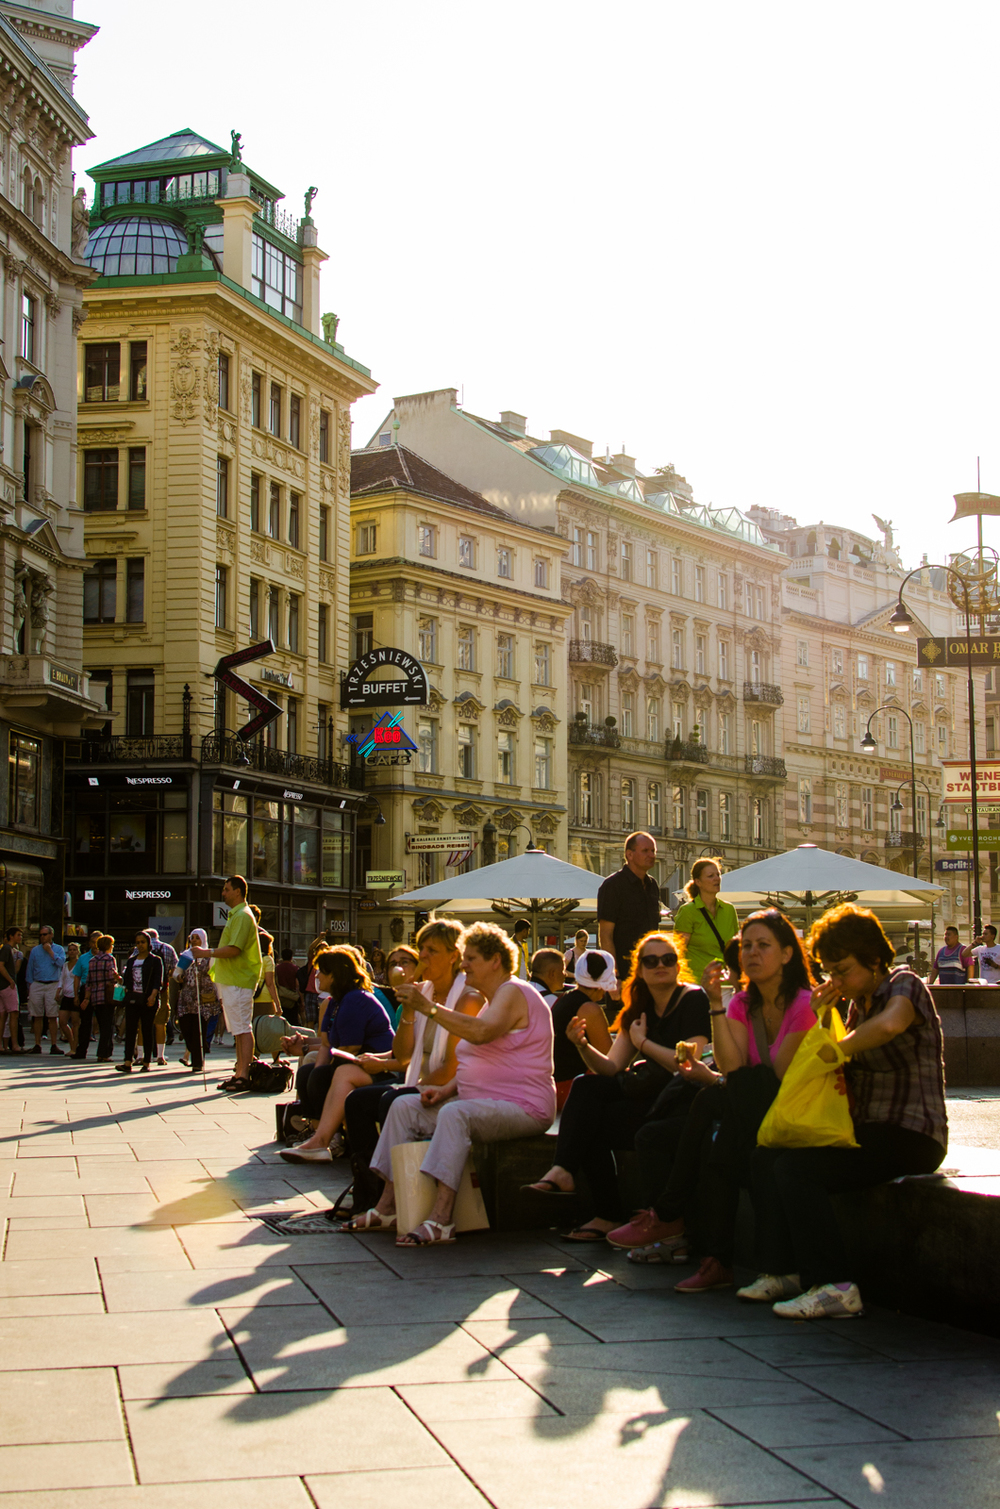 Project 365: #163 - Summer on Graben